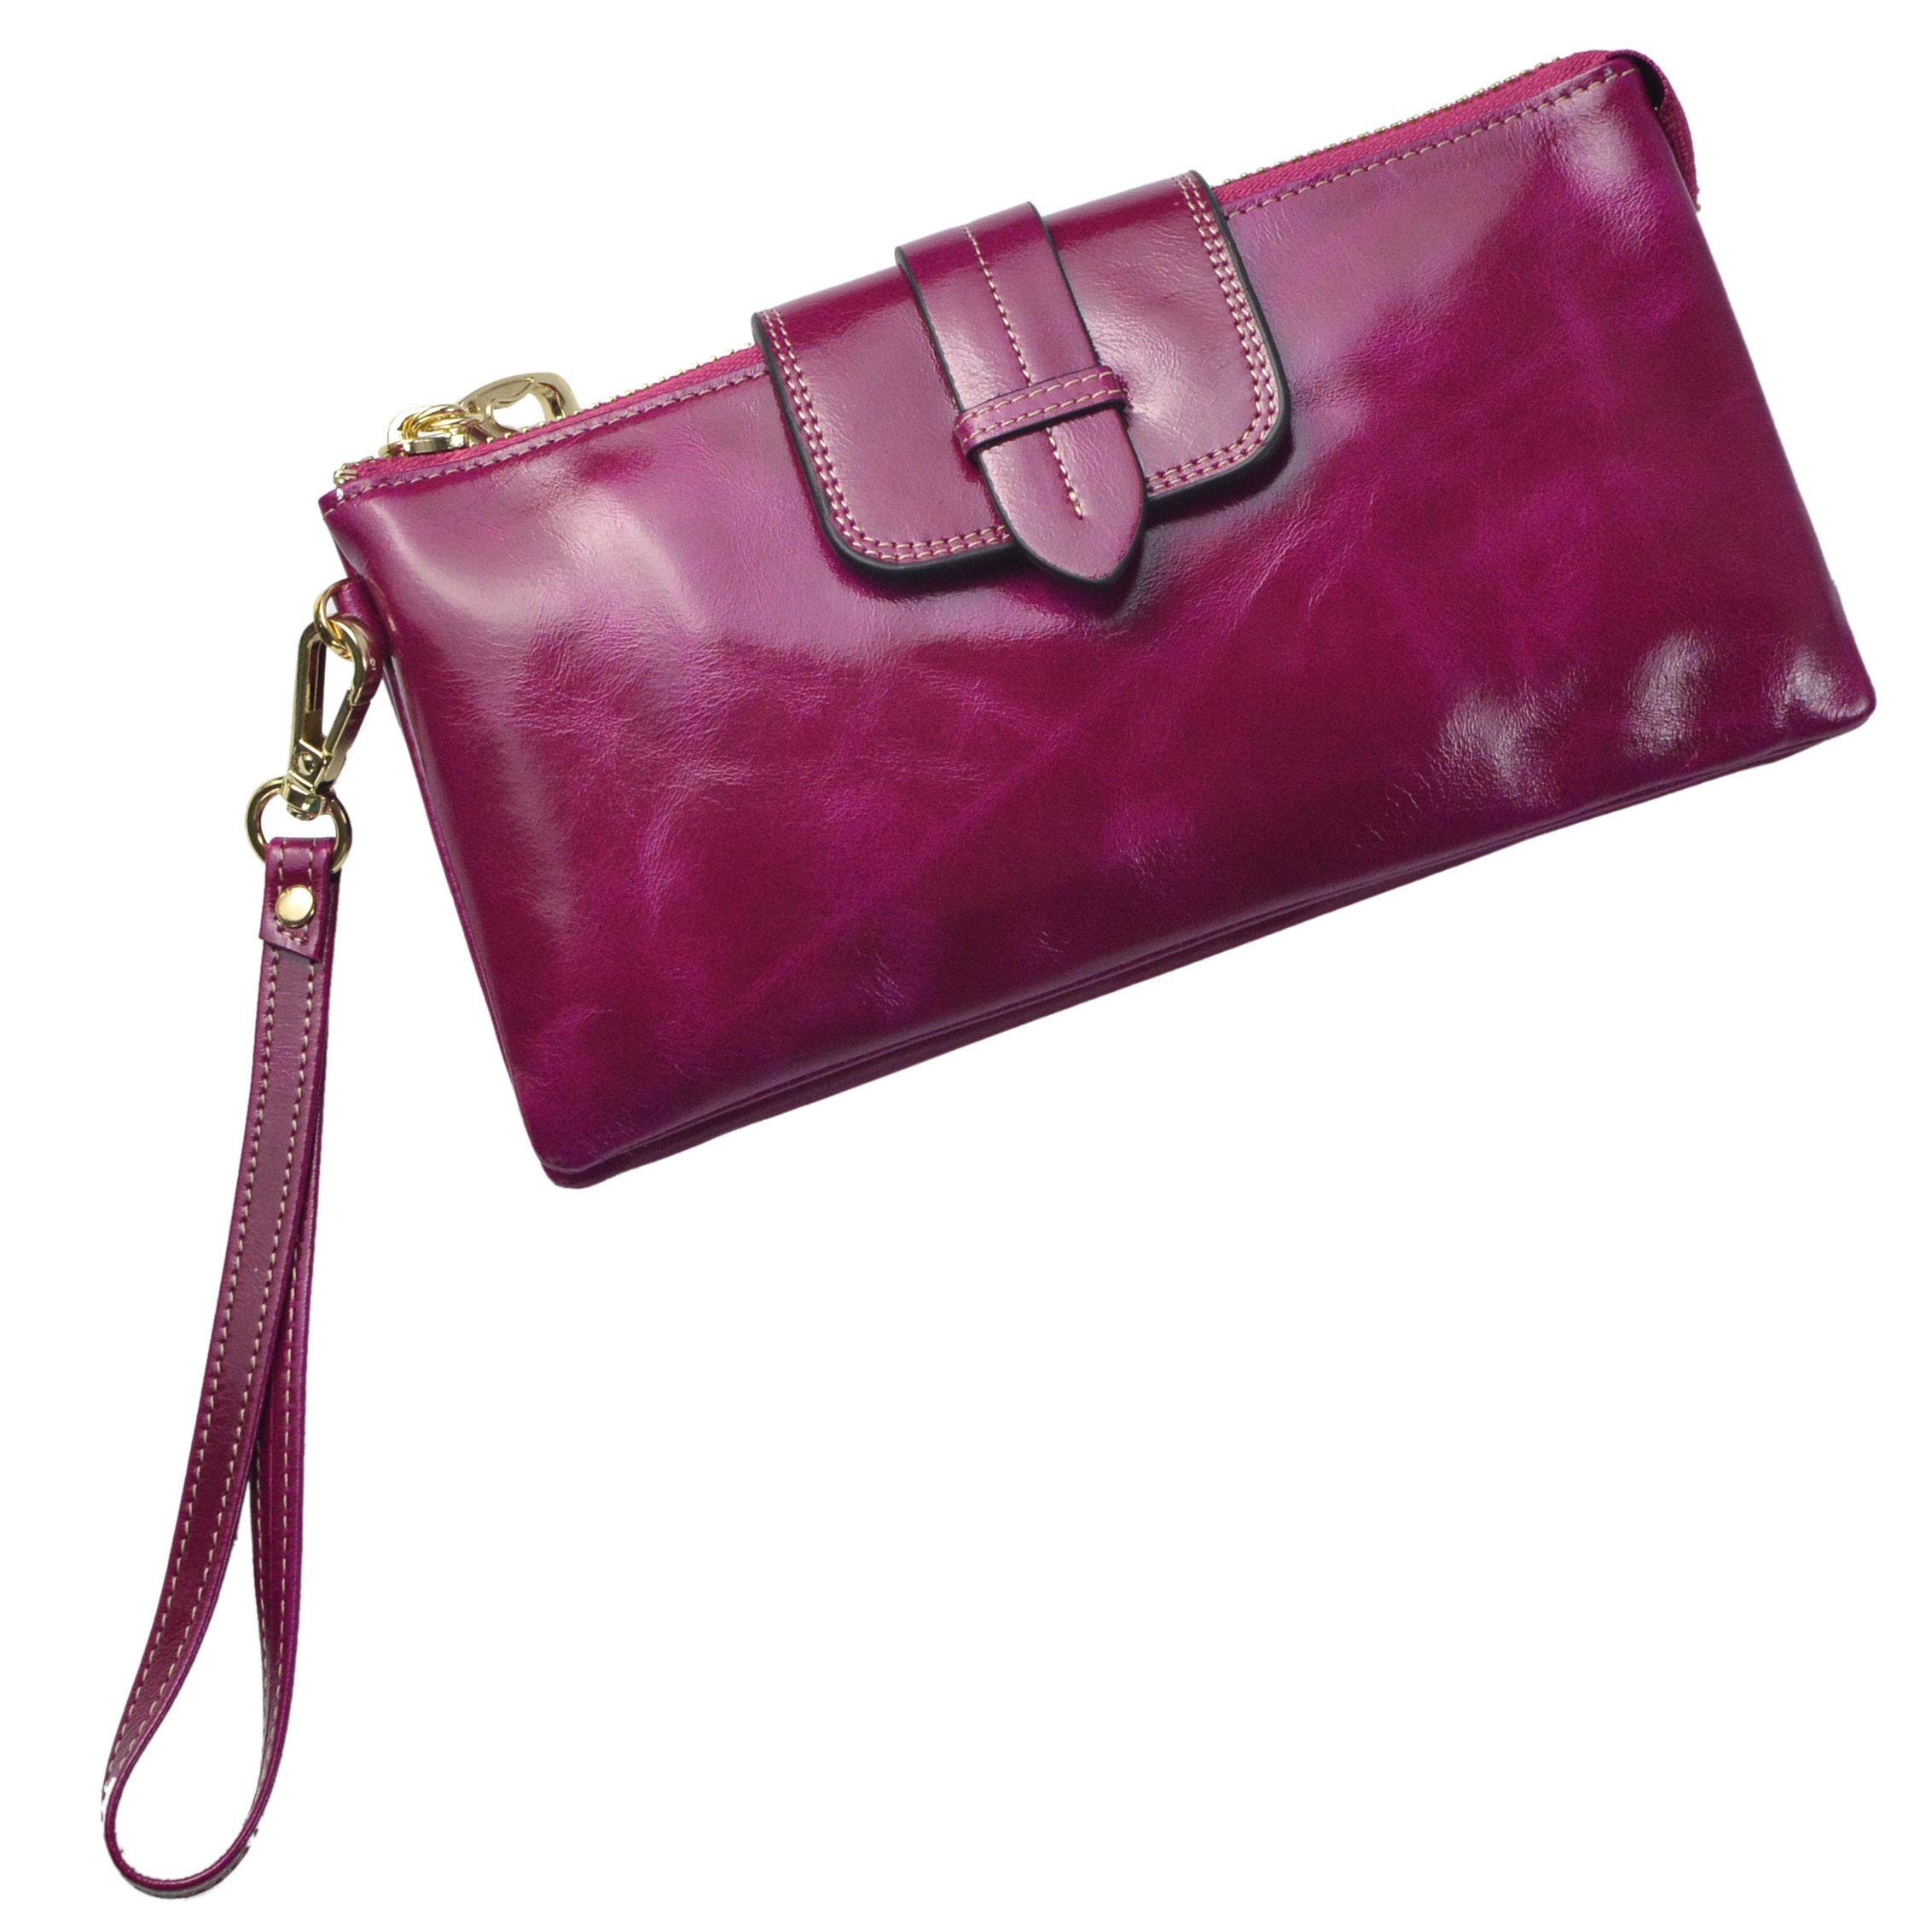 Bveyzi Women's Leather Smartphone Wristlet Clutch Wallet with Shoulder Strap (Purple)